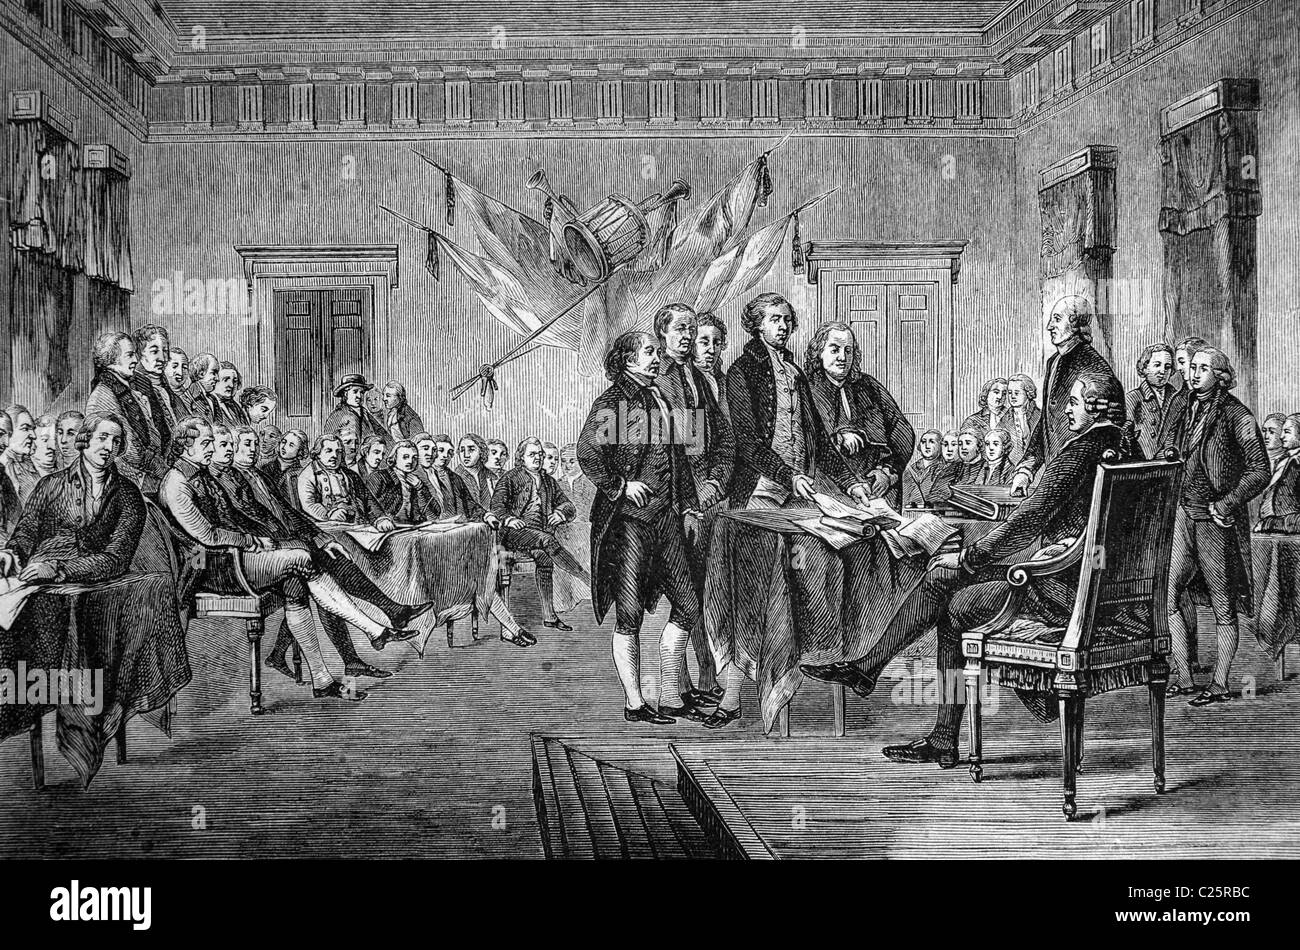 Signing of the Declaration of Independence of the United States of North America in 1776, the U.S., historical illustration, - Stock Image